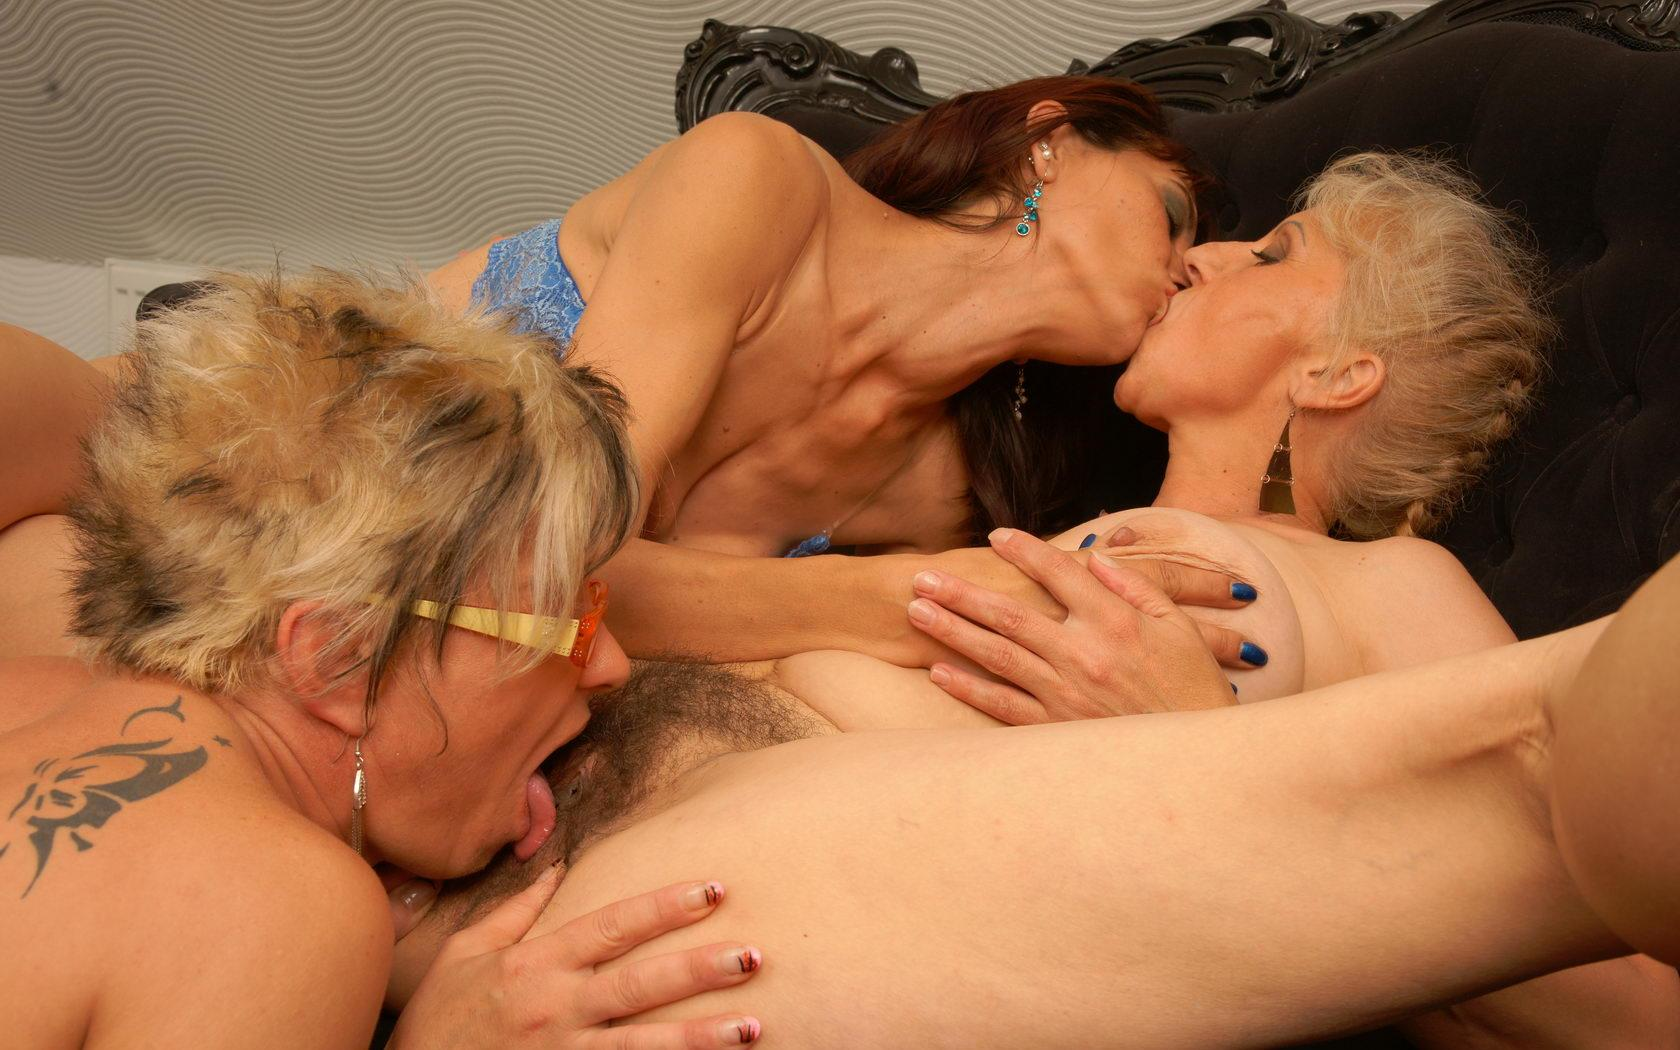 Jane a lustfull granny licking a 70 years old and 18 years old pussy here